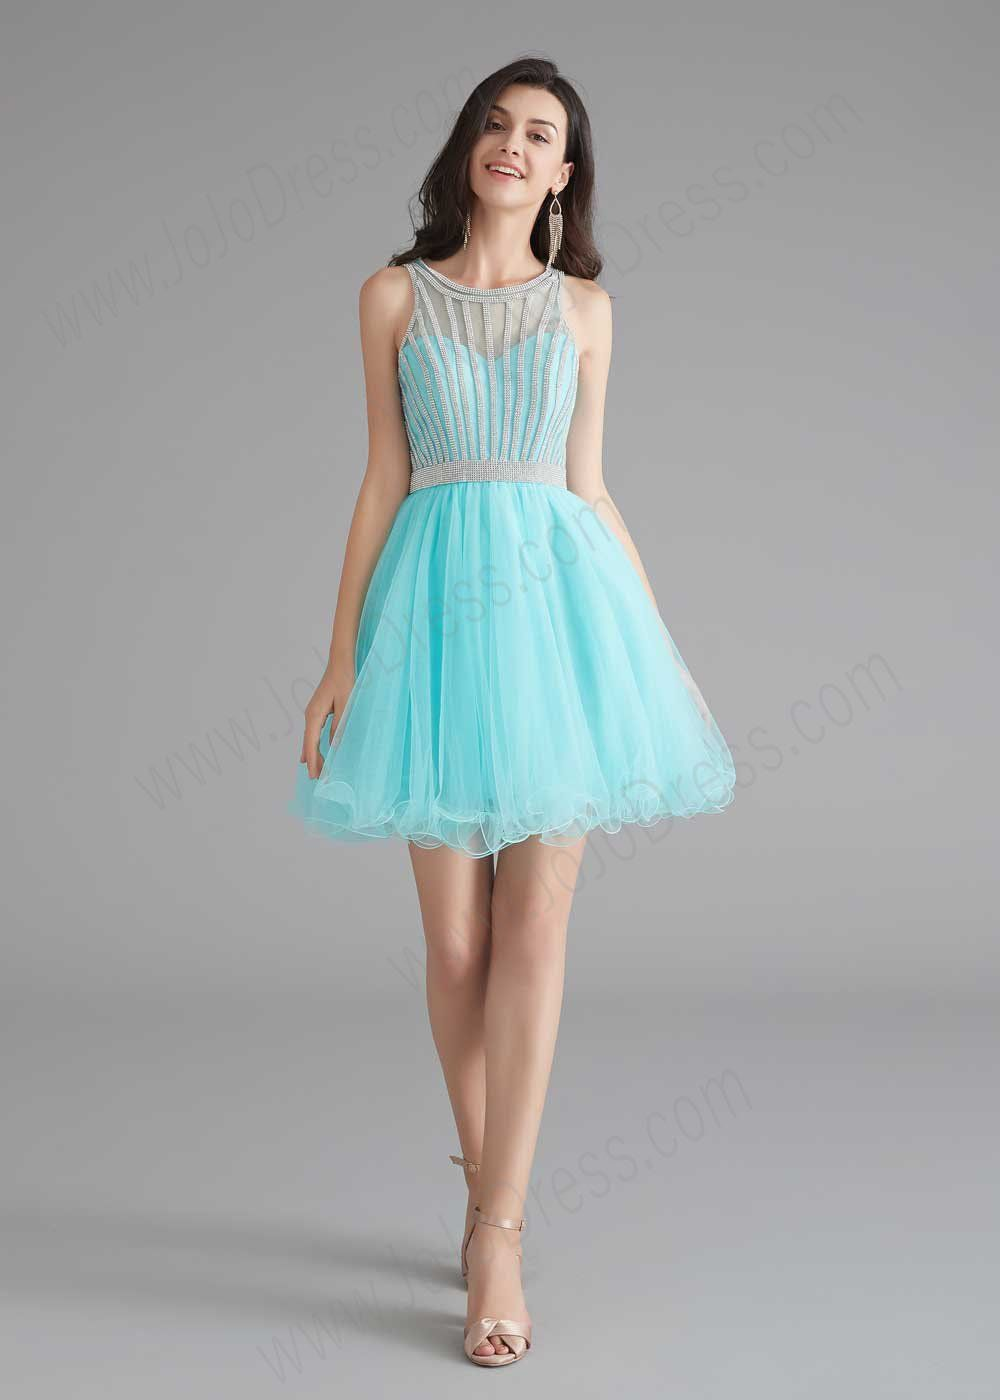 Chic Short Turquoise Tulle Evening Dress Short Cocktail Dress Tulle Evening Dress Cocktail Dress Prom [ 1400 x 1000 Pixel ]